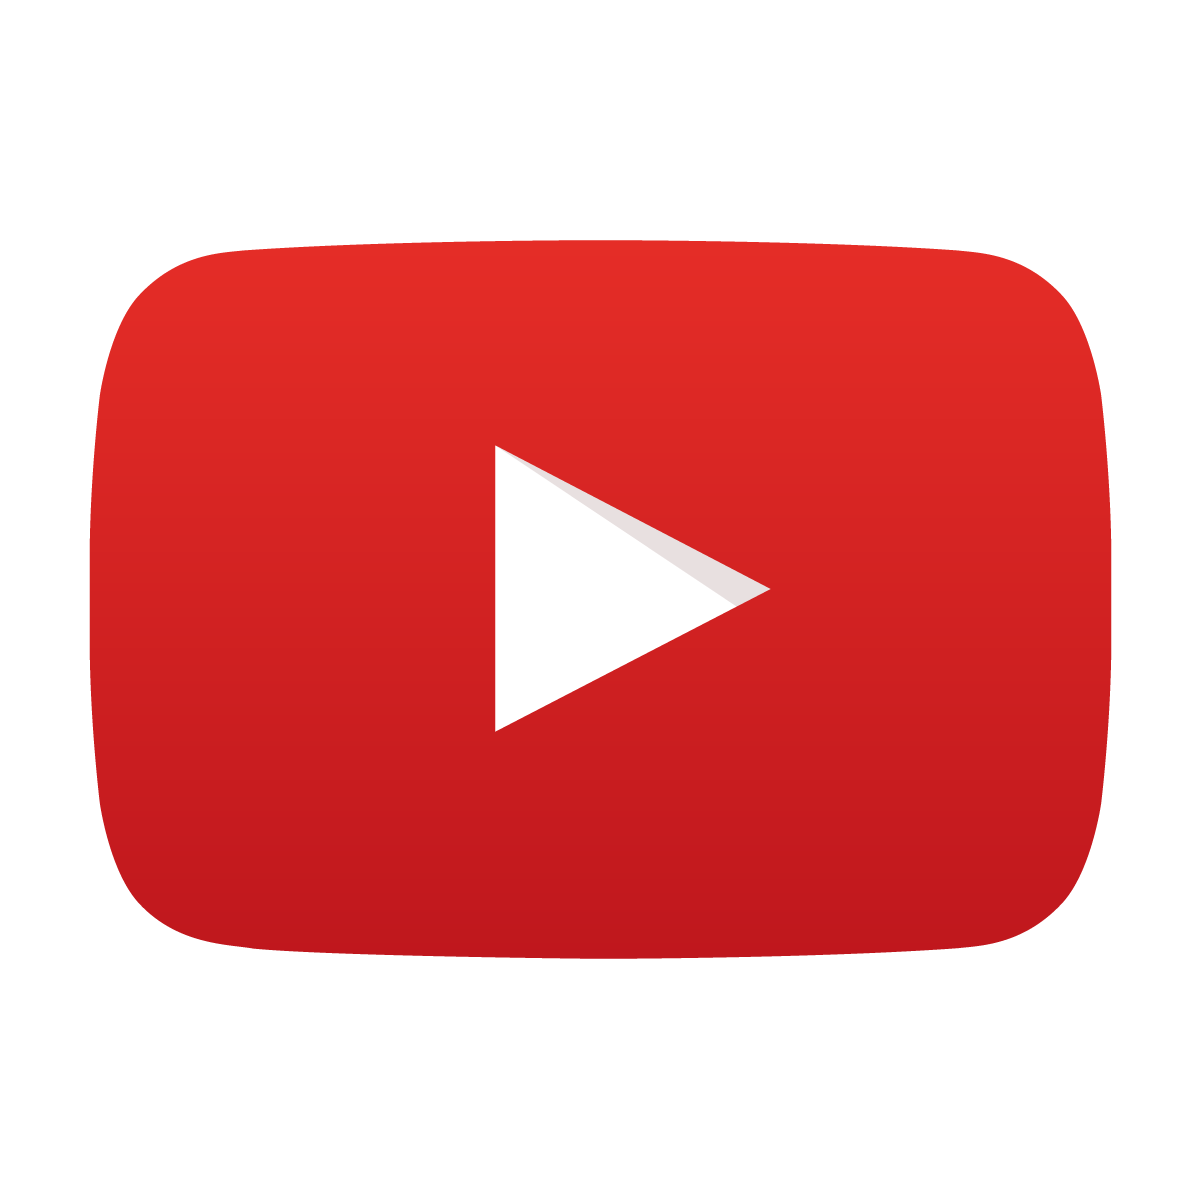 Hd Youtube Logo Png Transparent Background #46031.